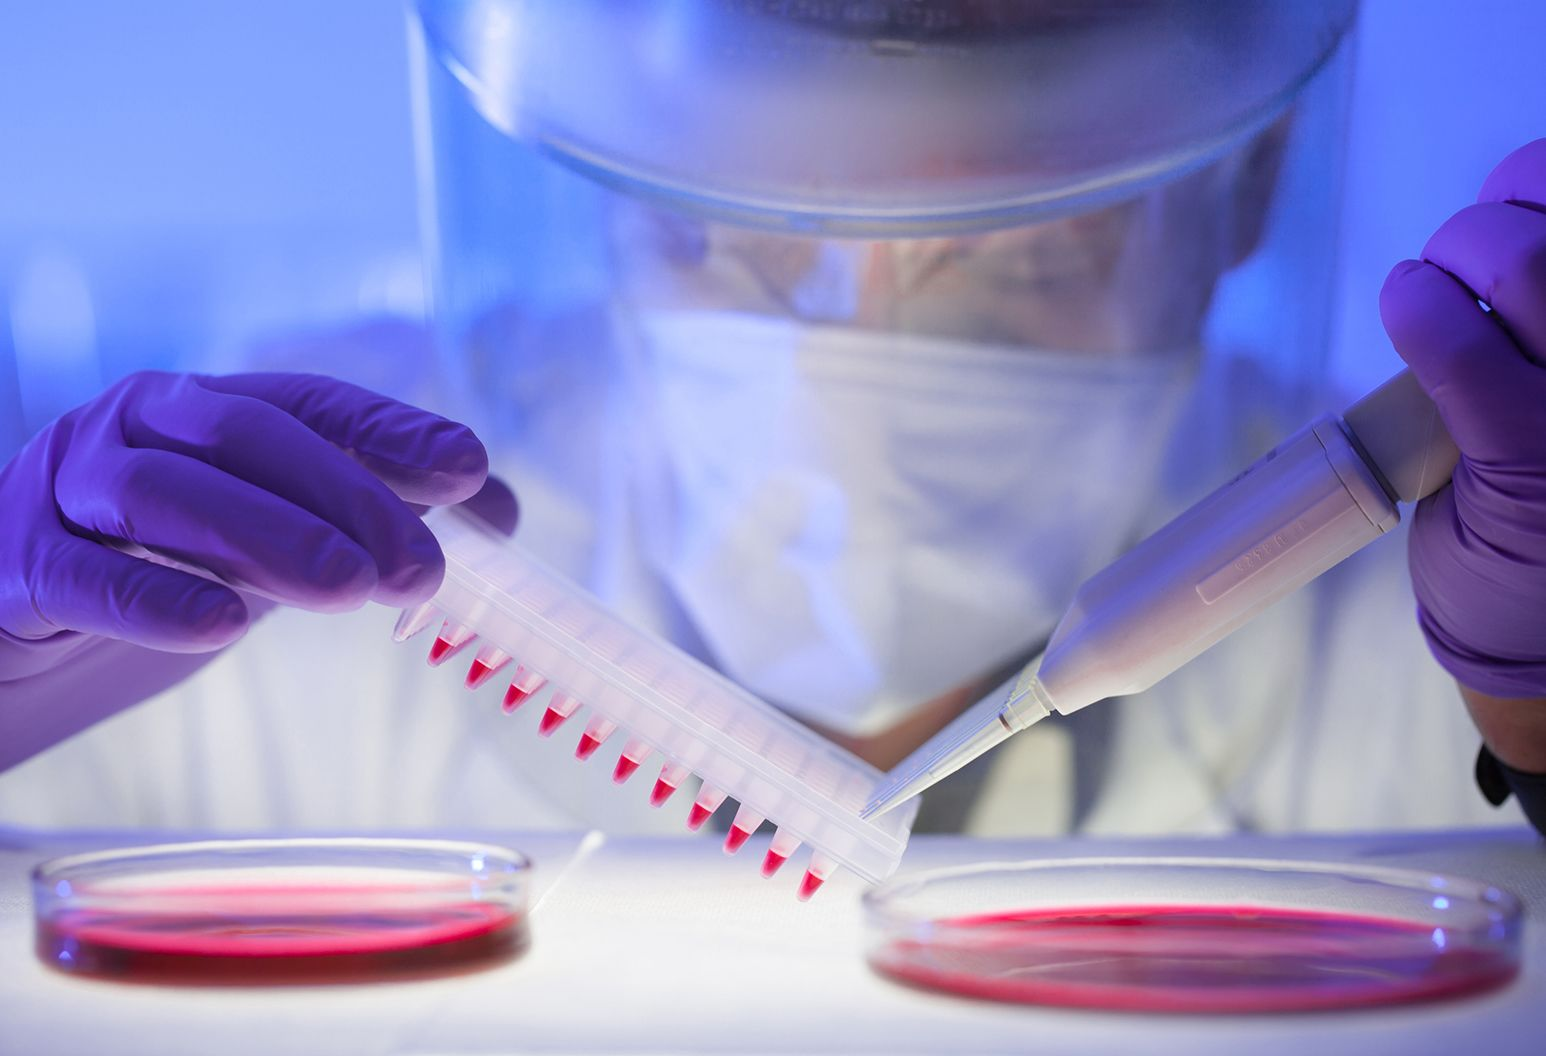 Lab researcher working with petri dishes